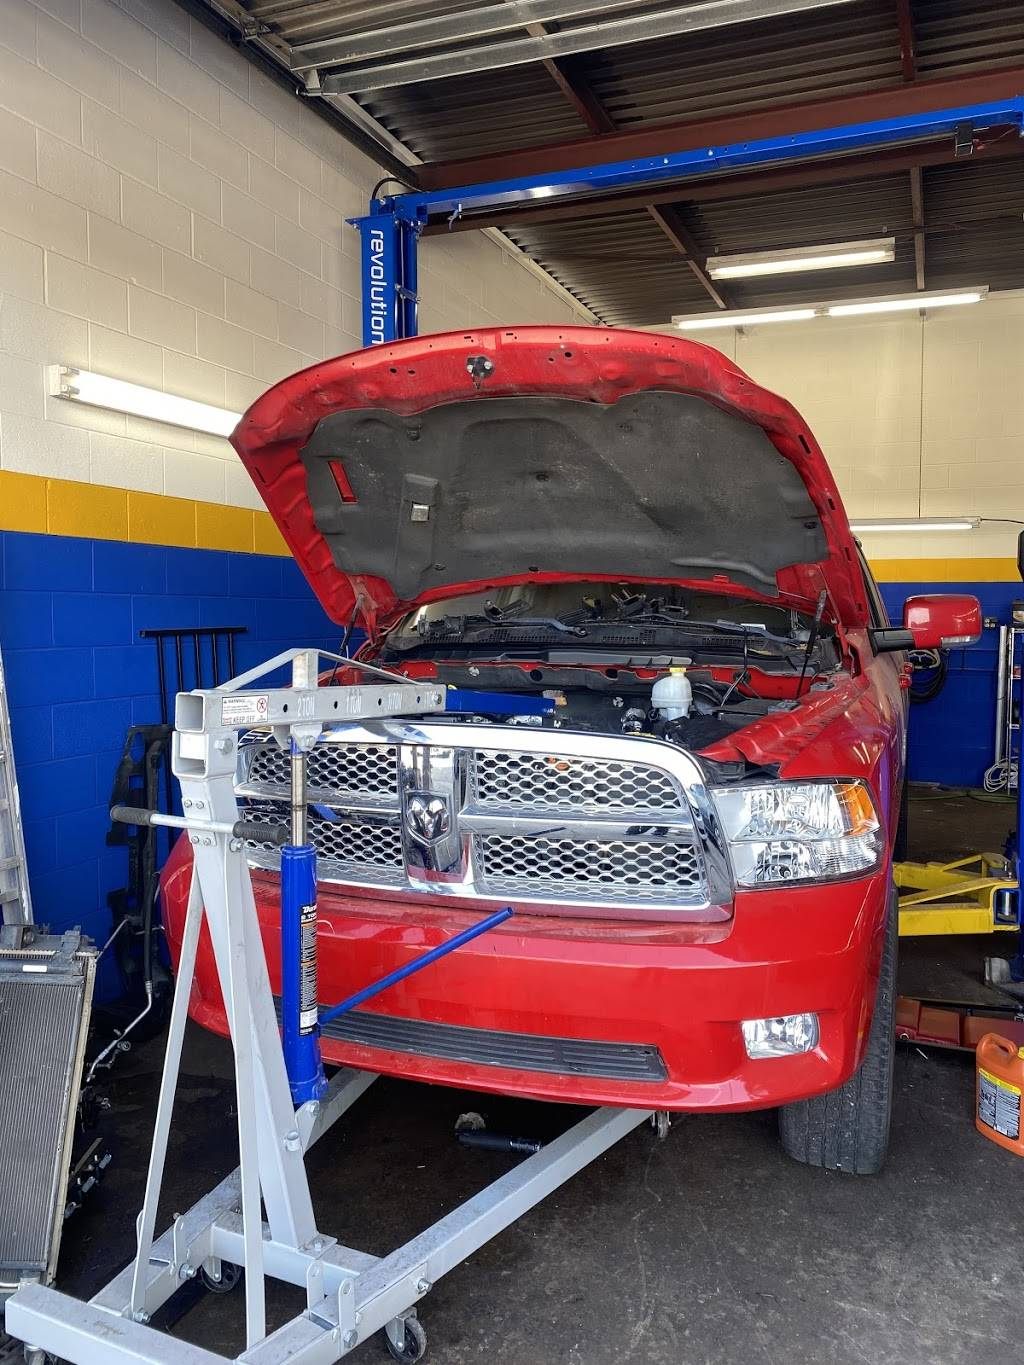 Flash auto repair - car repair  | Photo 3 of 4 | Address: 6303 1/2 N Meridian Ave, Oklahoma City, OK 73112, USA | Phone: (405) 730-6762